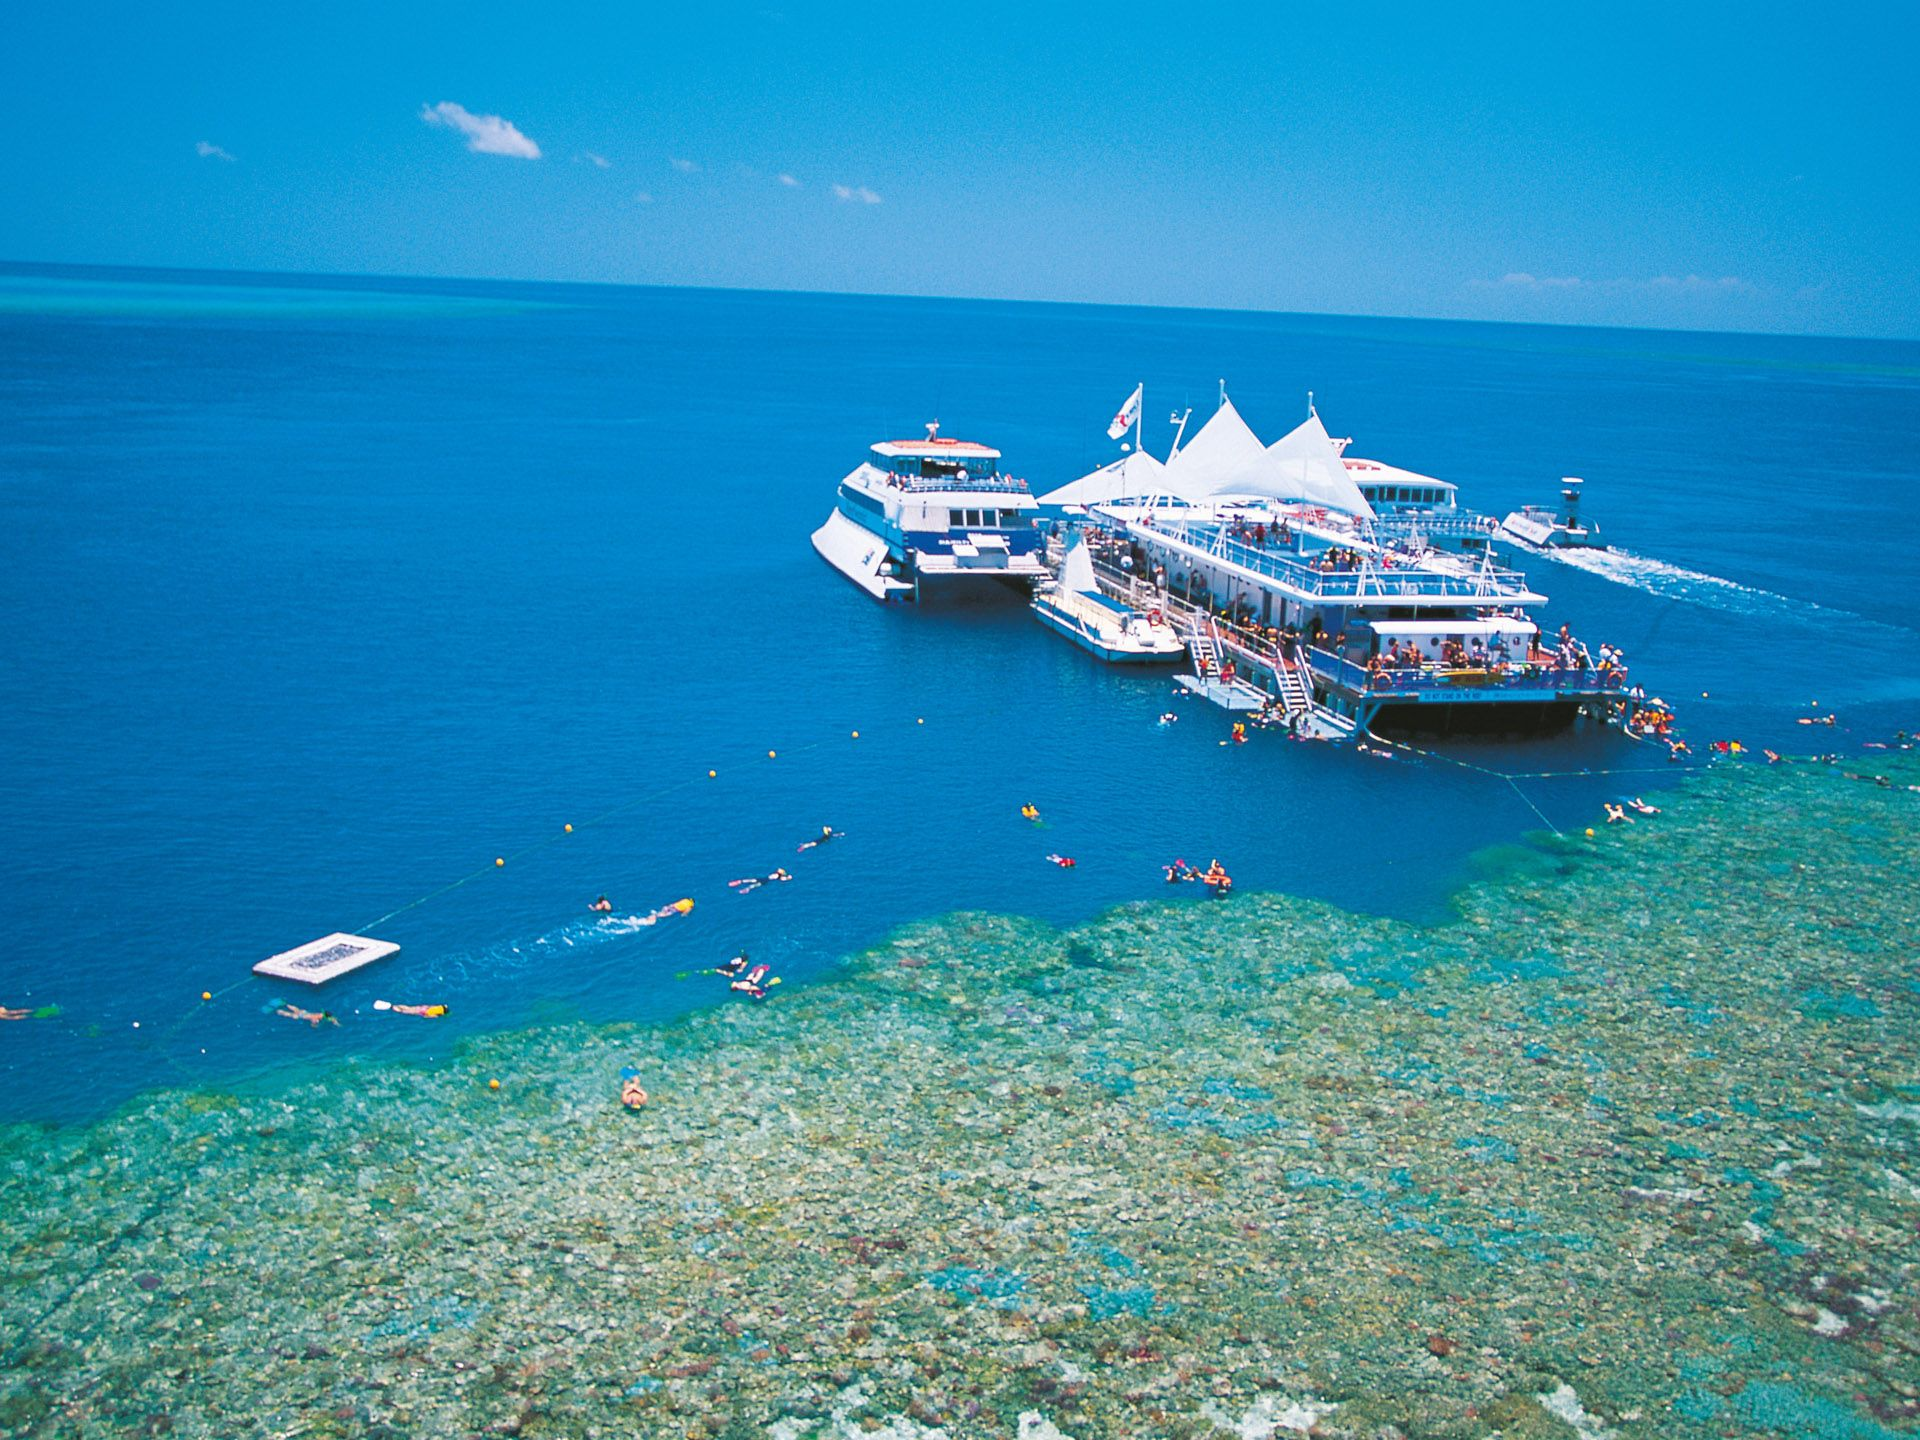 http://www.prasannaholidays.com/wp-content/uploads/2014/05/Resort-Great-Barrier-Reef-Australia.jpg